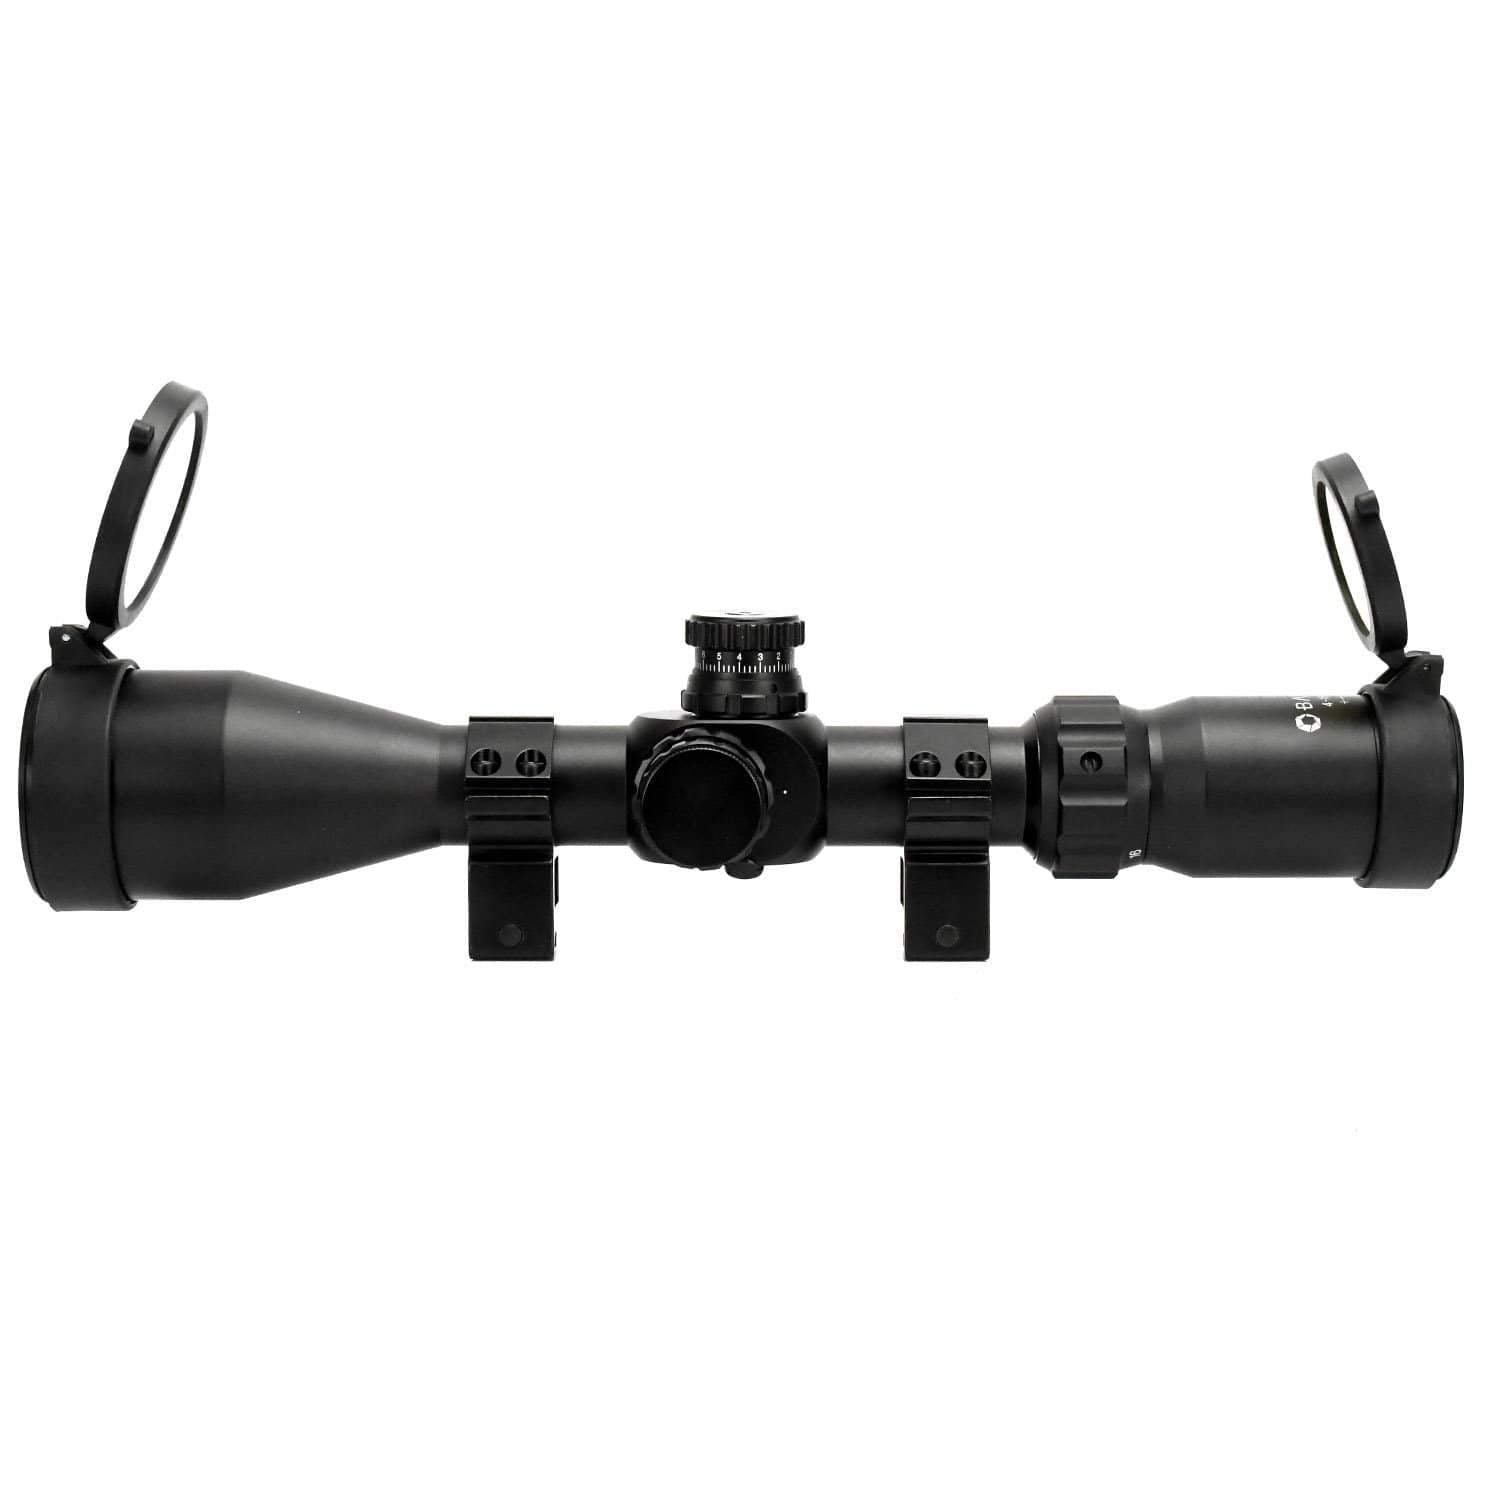 Barska 4-16x 50mm IR Tactical Scope with First Focal Plane Trace MOA Reticle Armadillo Safe and Vault